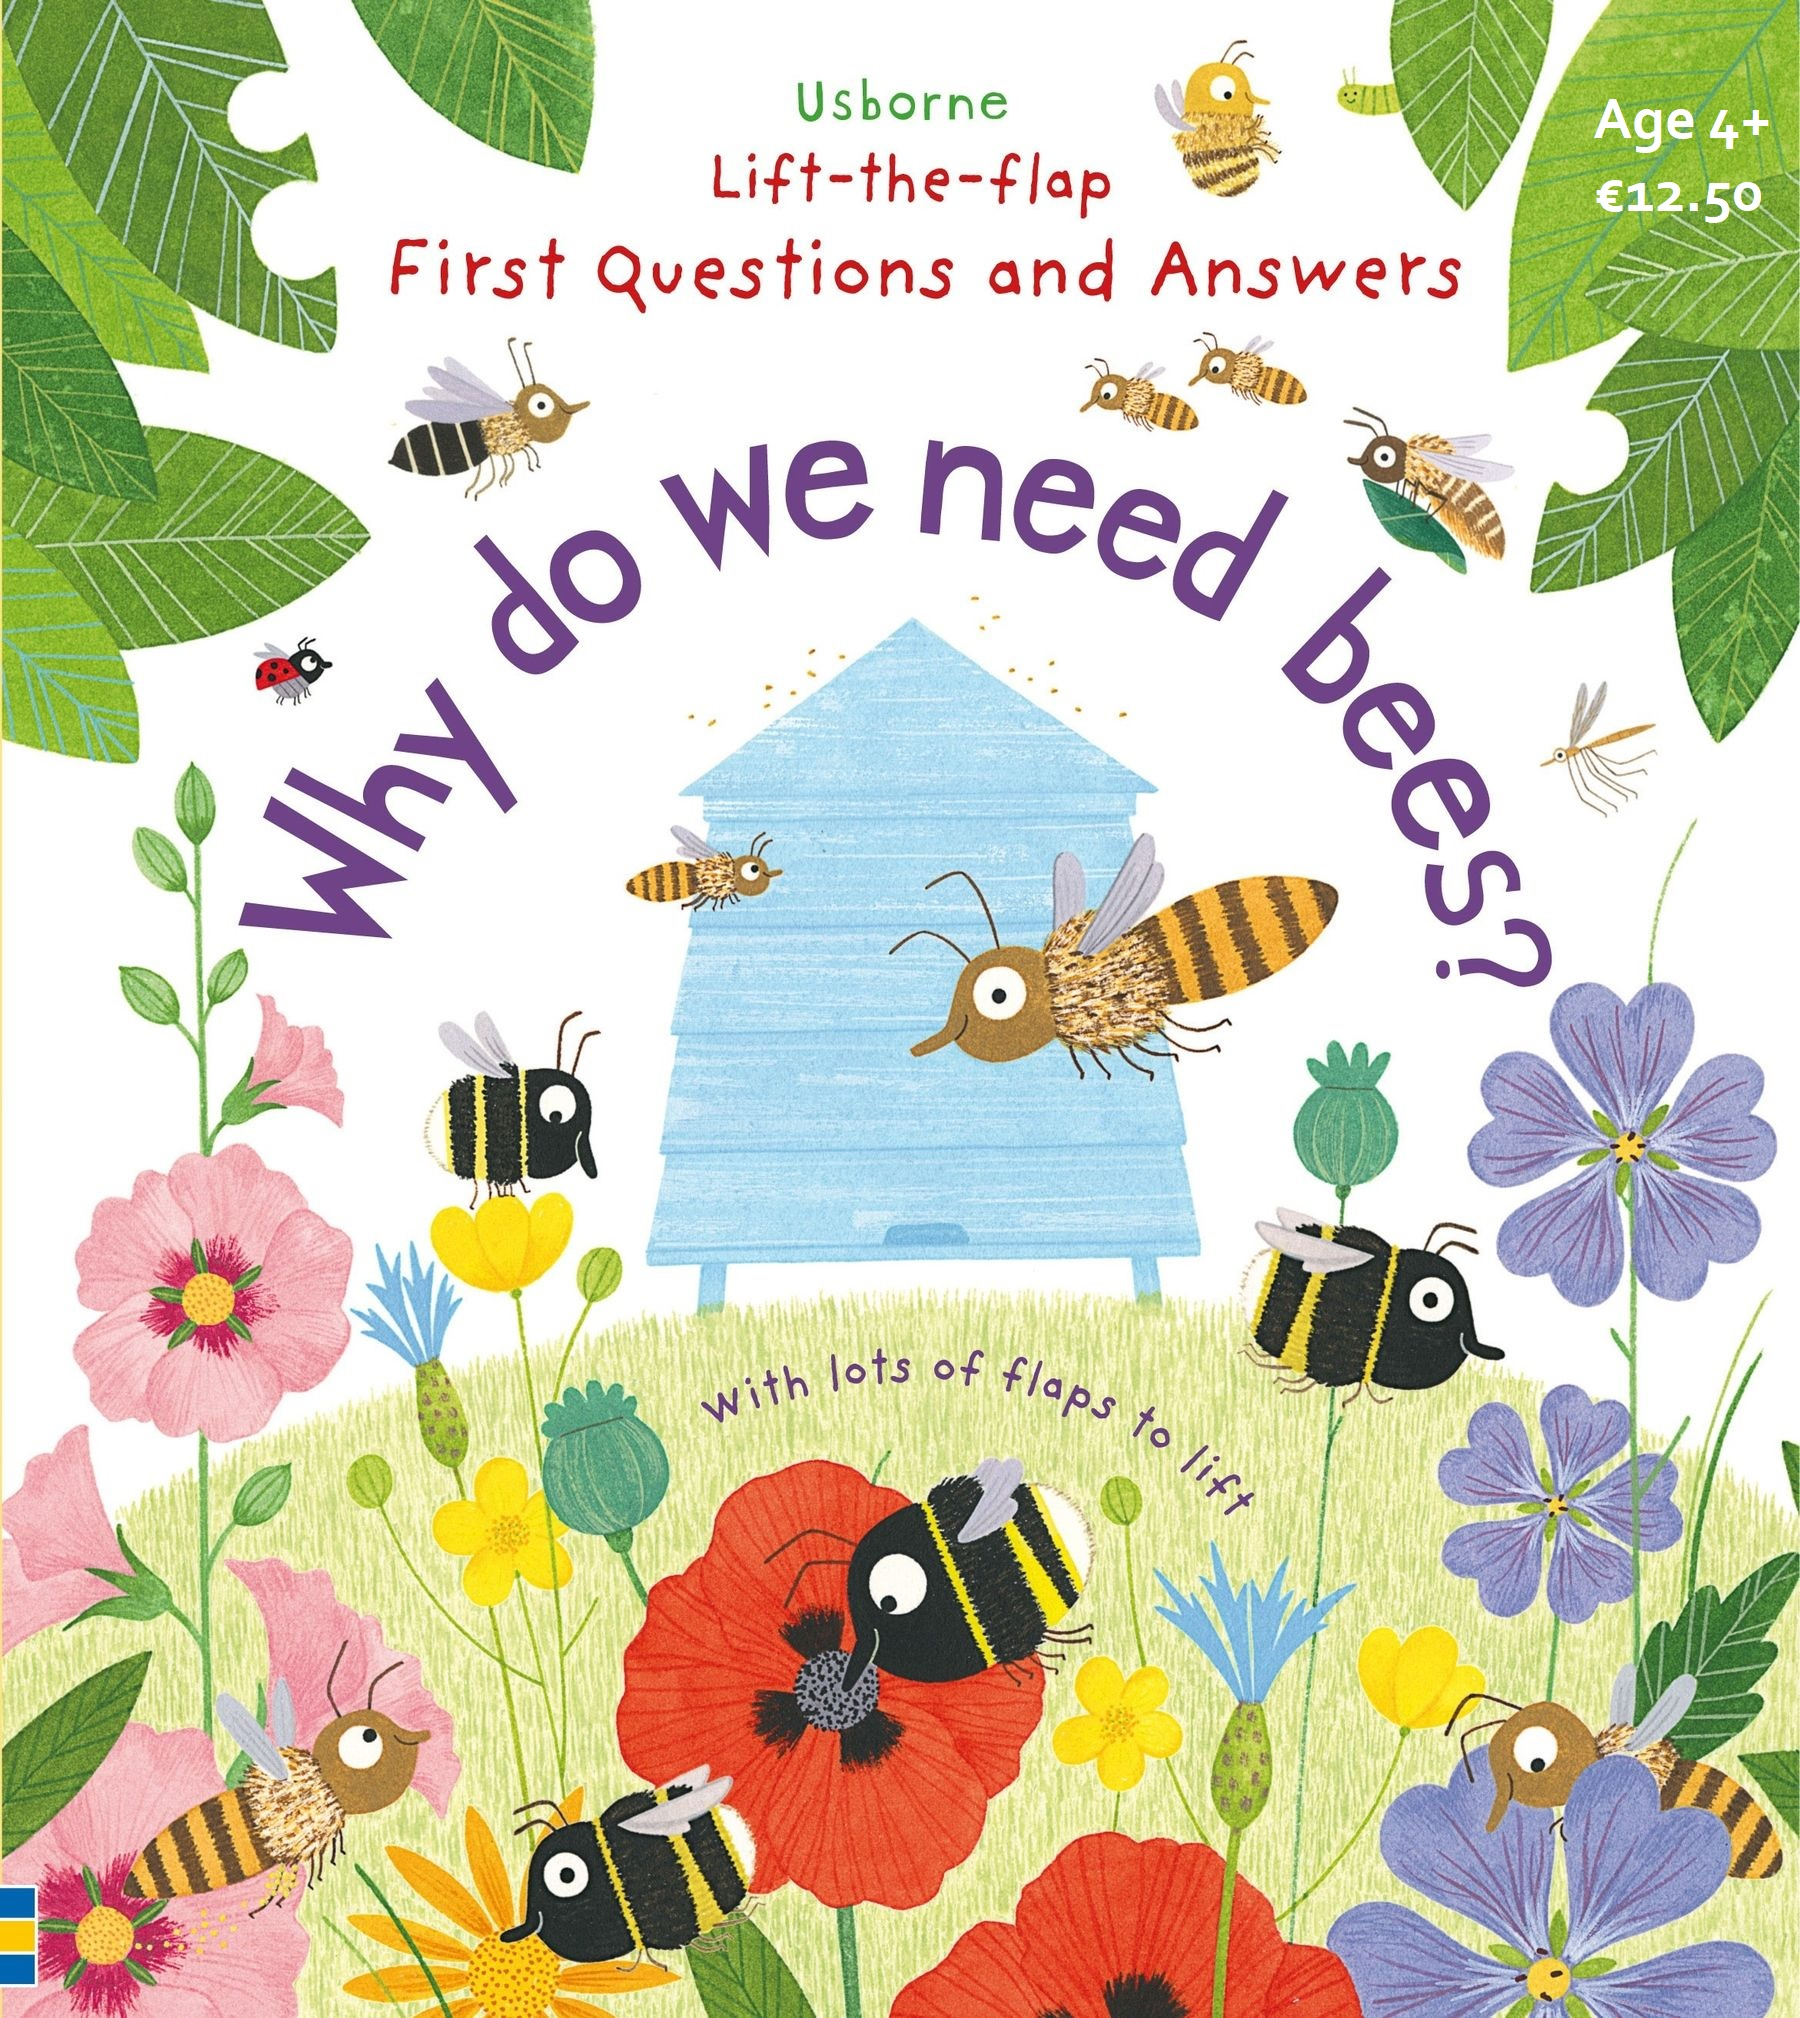 Why do we need bees? Lift-the-Flap First Questions and Answers  Image